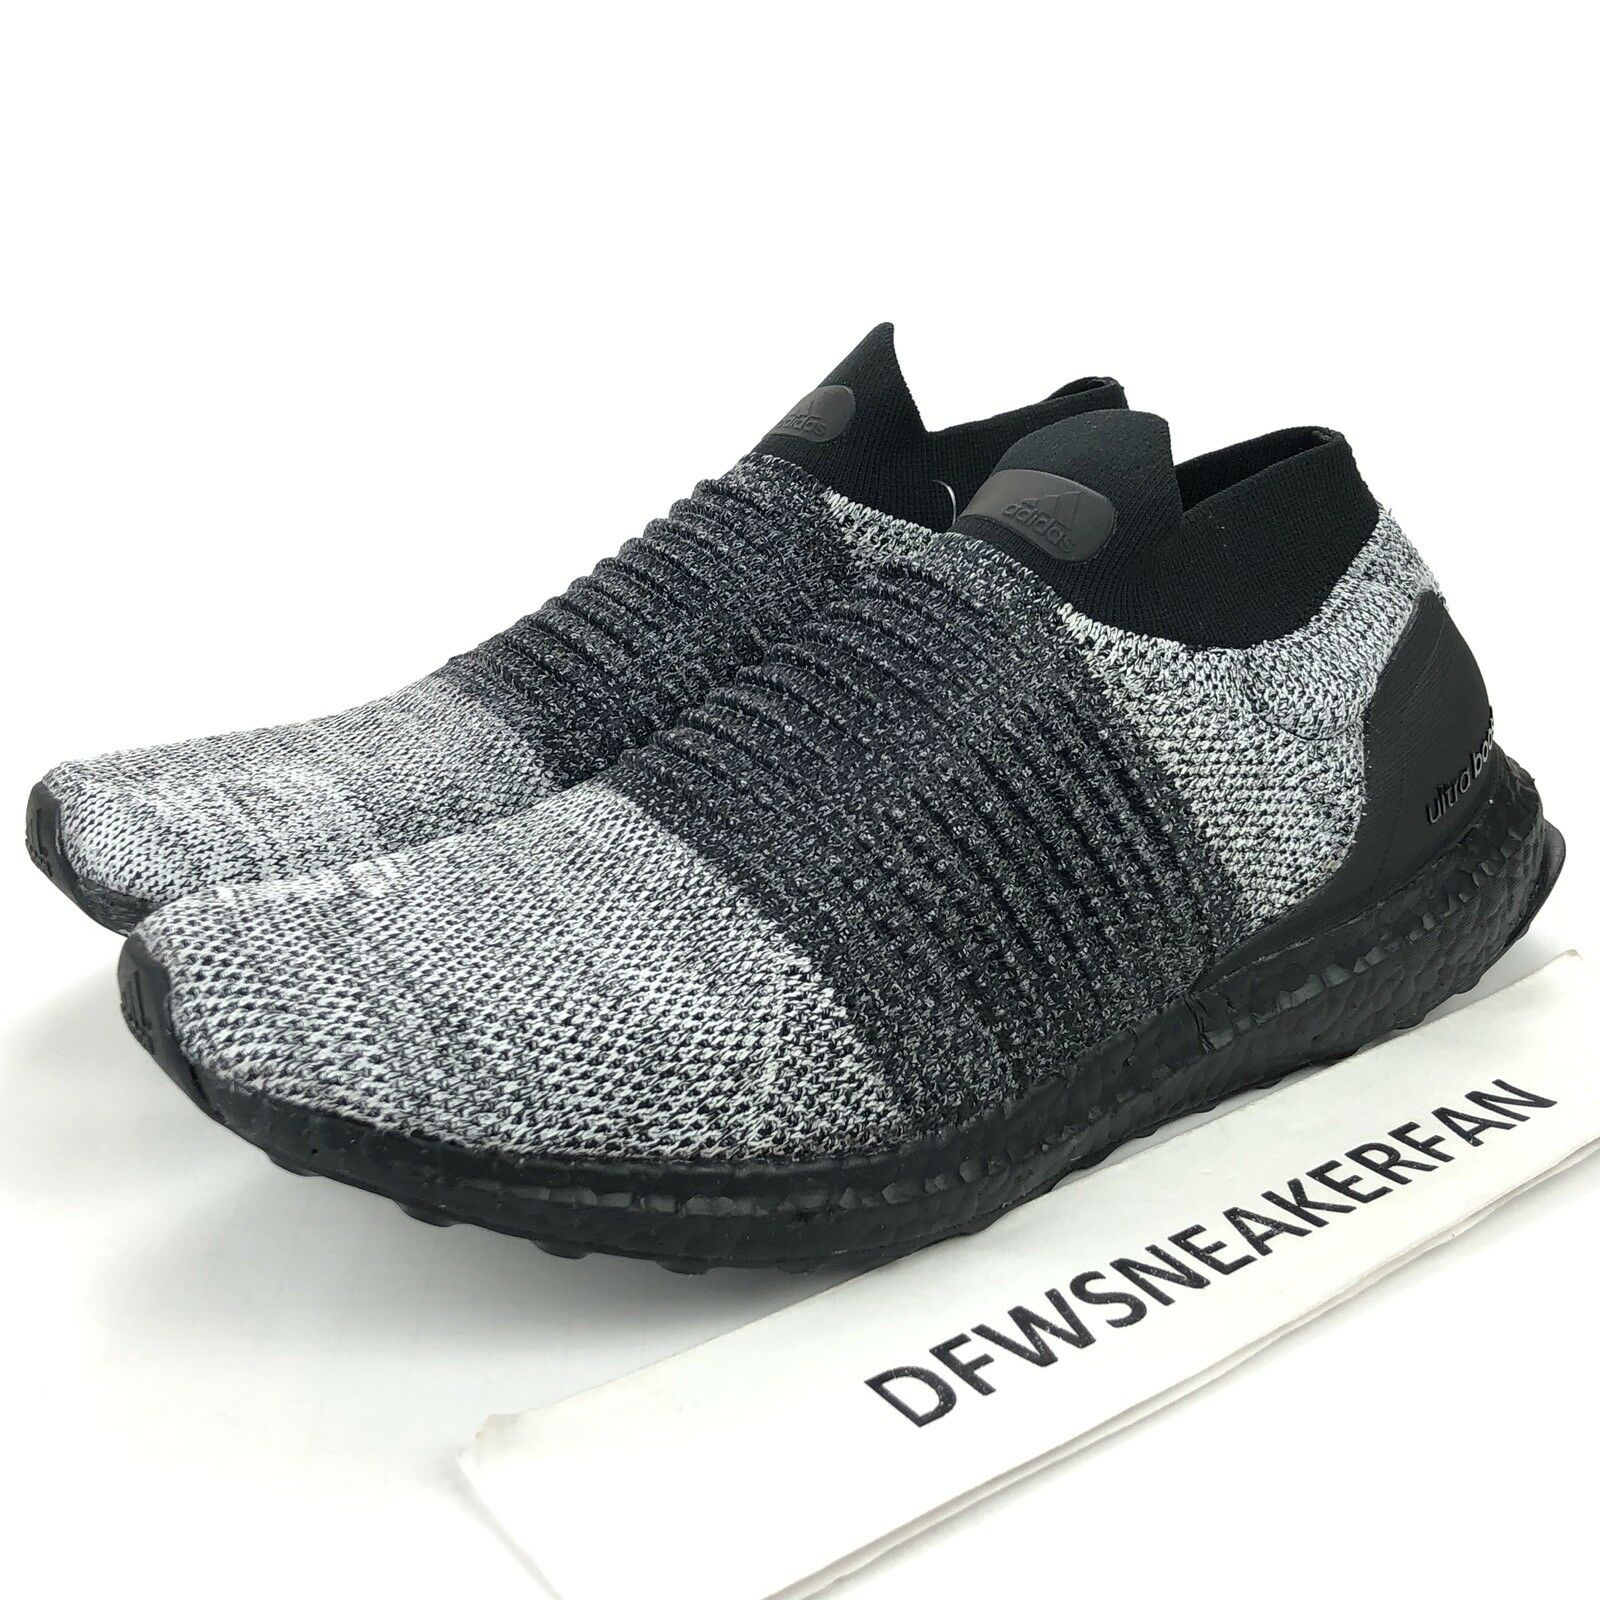 Adidas UltraBOOST Laceless Men's Size 11 Core Black Grey Running shoes BB6137